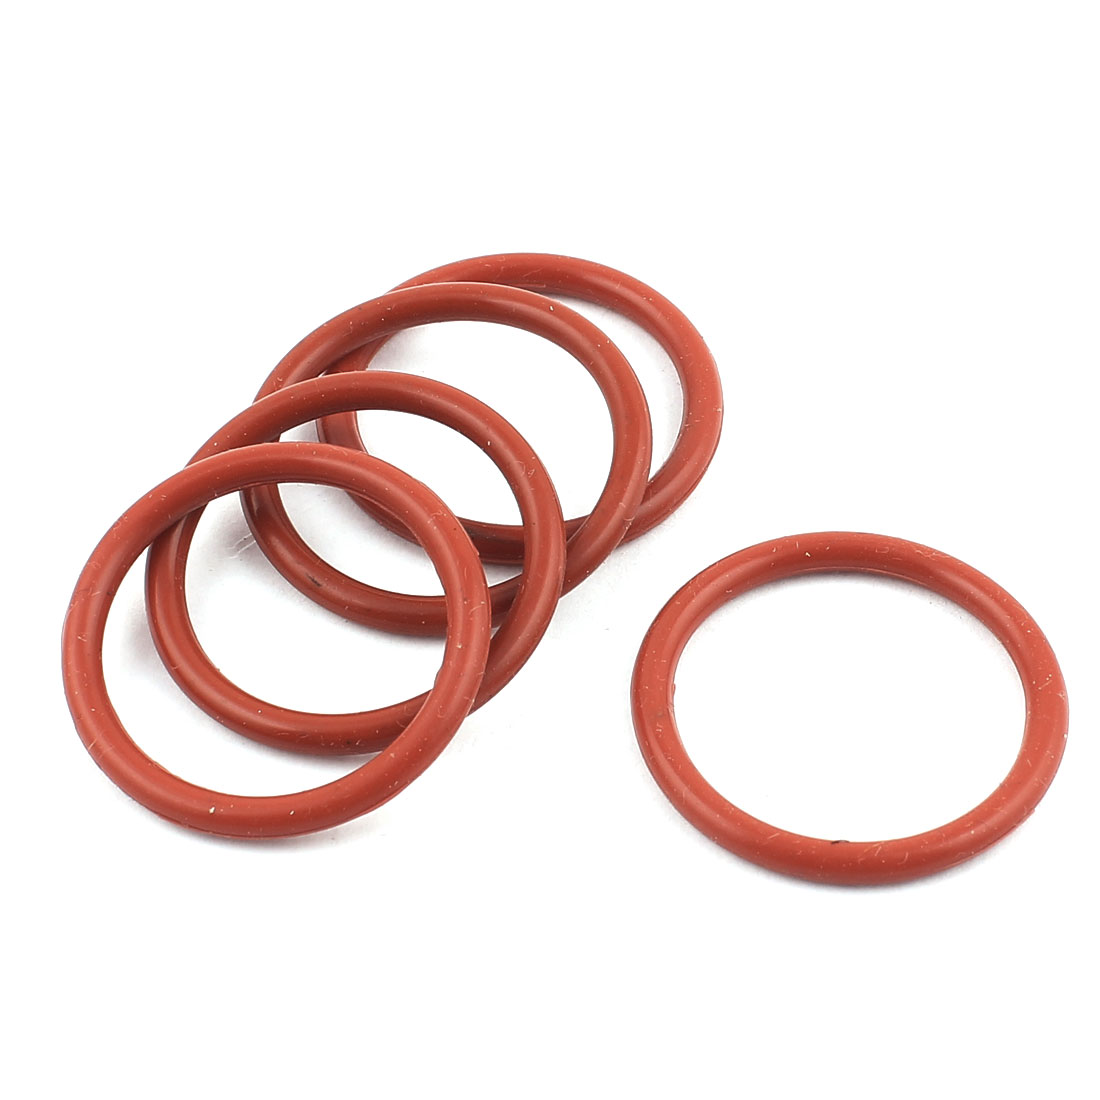 Rubber 33mm x 27mm x 3mm Oil Seal O Rings Gaskets Washers Brick Red 5 Pcs